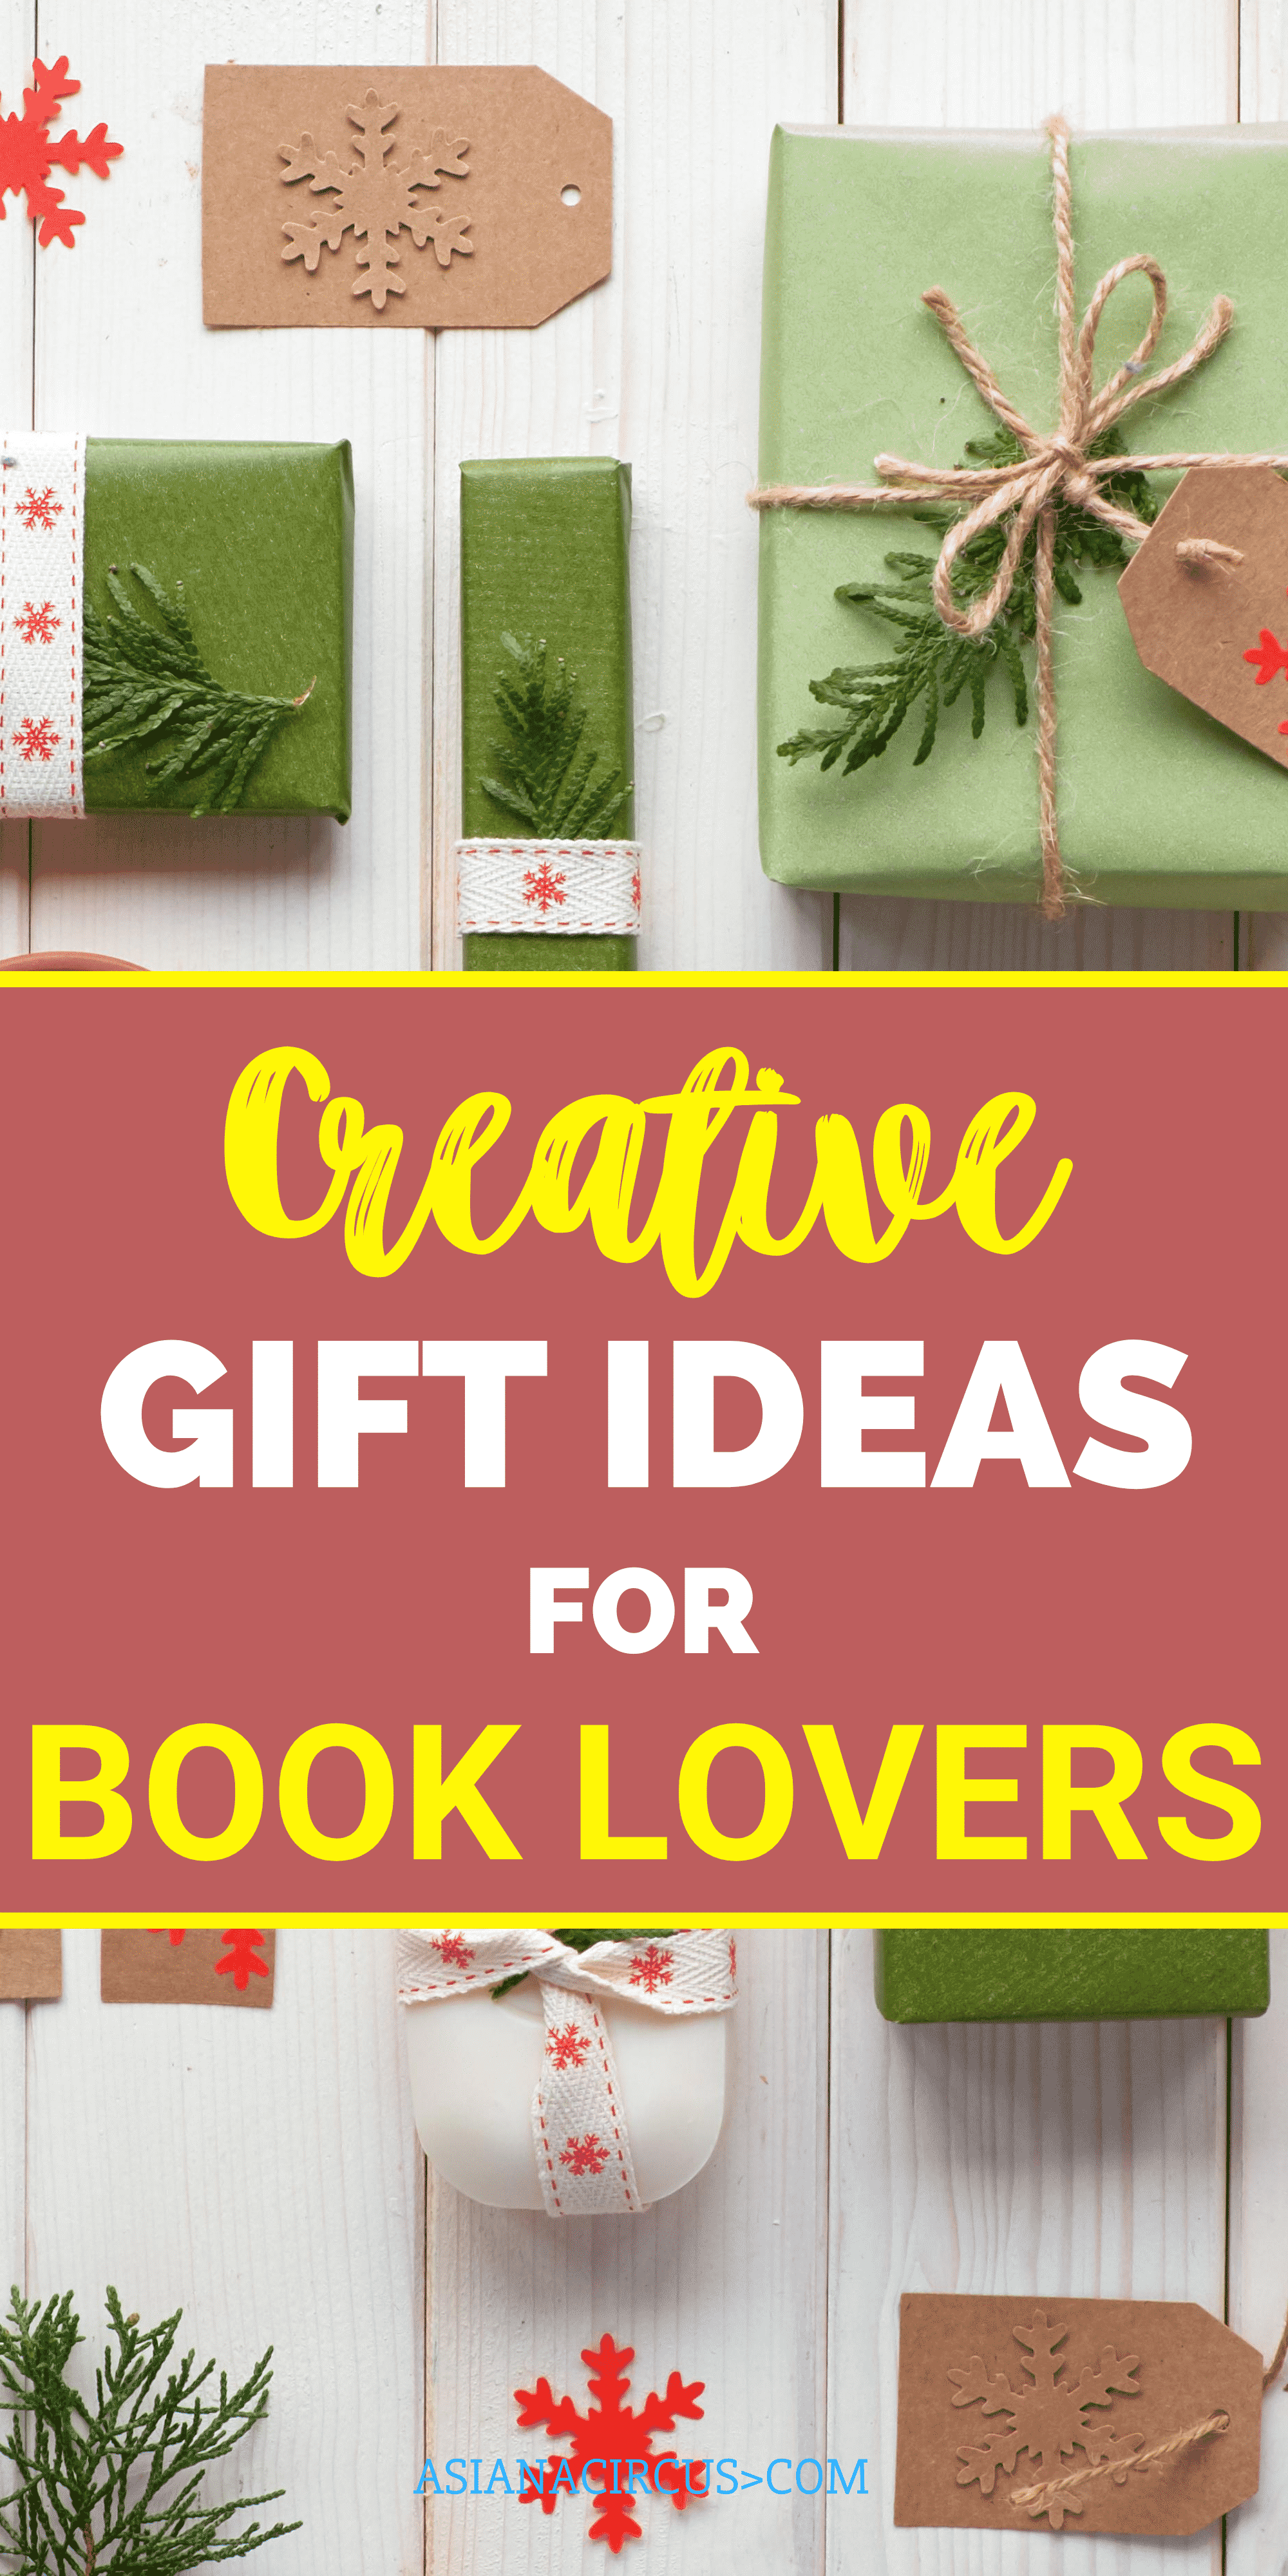 Literary gifts for bookstagrammers